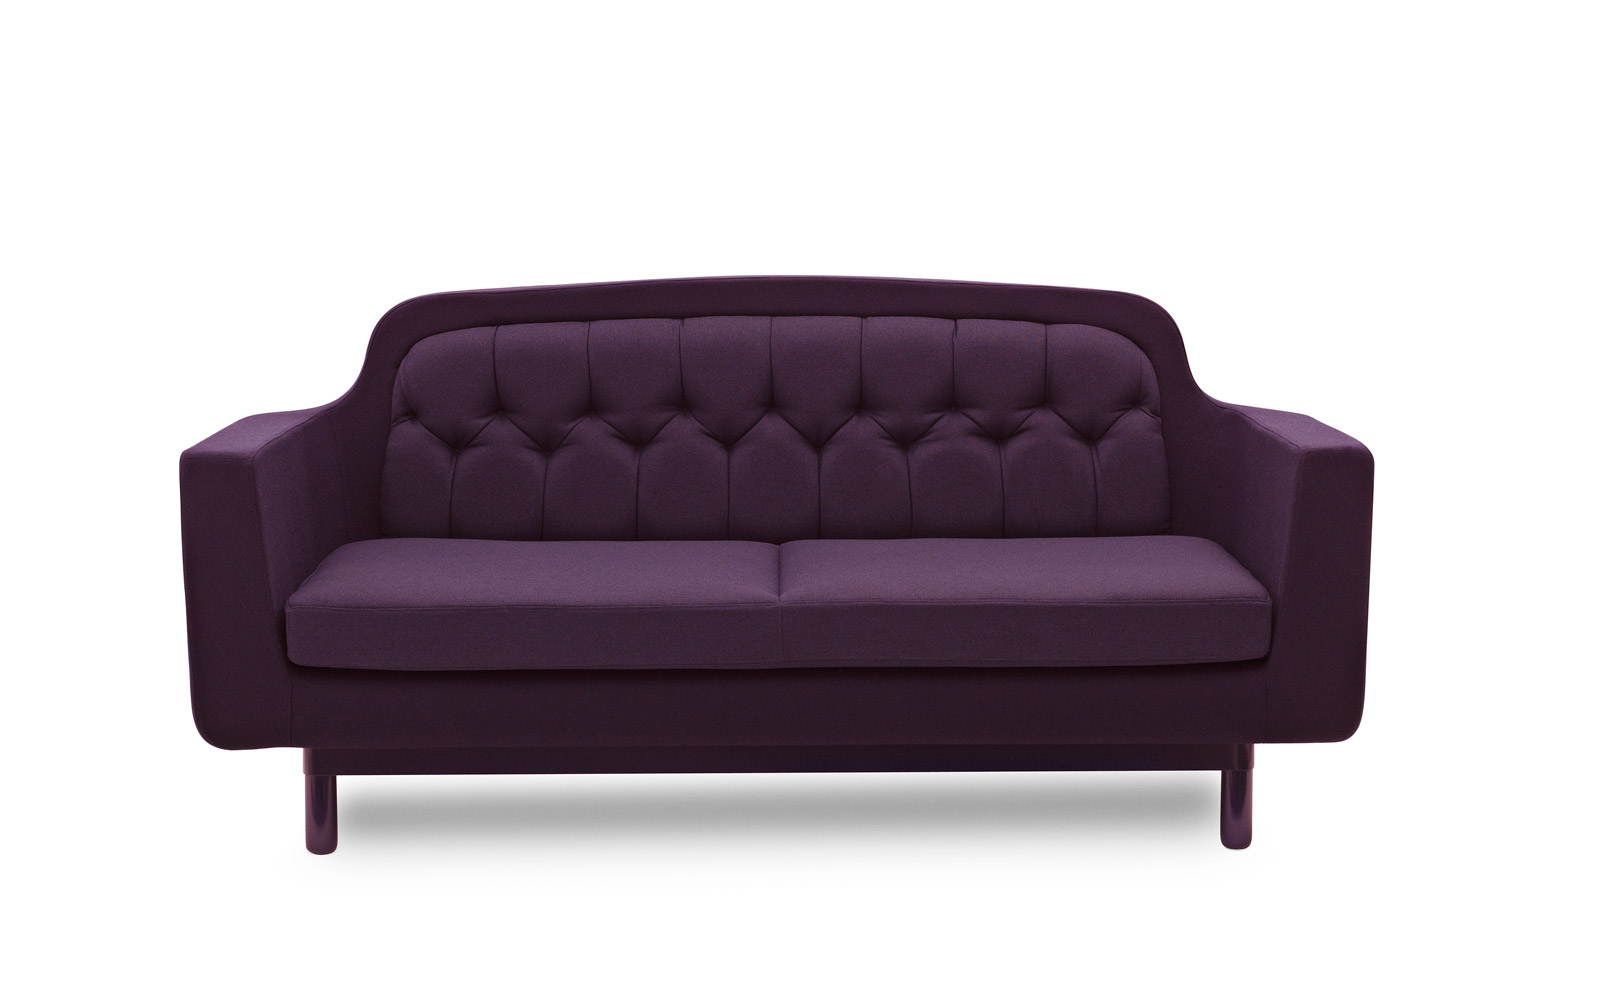 Warm Purple Sofa to Complete Your Living Room Decor: Purple Velvet Sectional Sofa | Velvet Couches For Sale | Purple Sofa